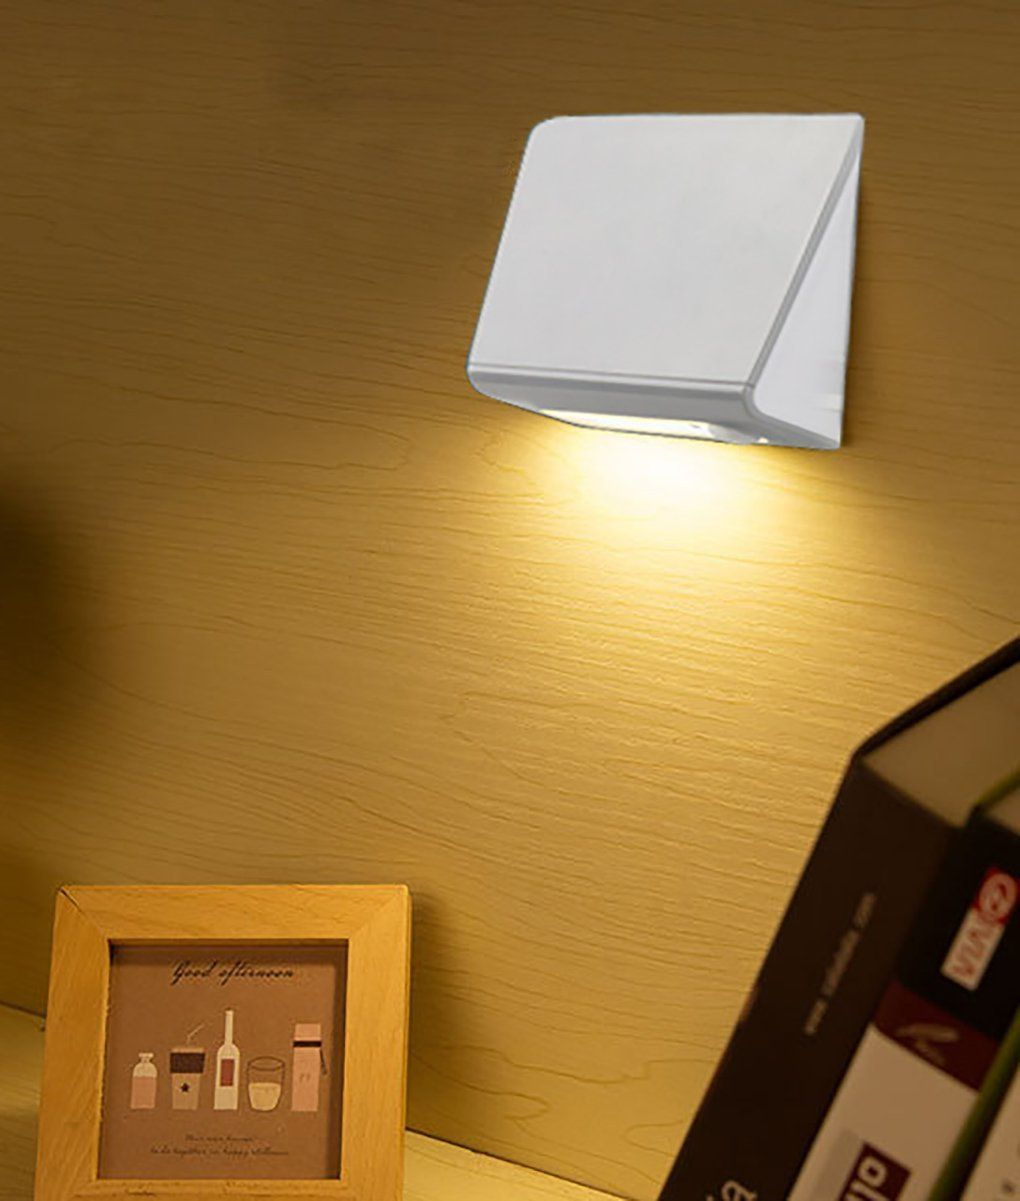 Ryham Security Motion Sensor Light Wall light for Cabinets, Kids ...